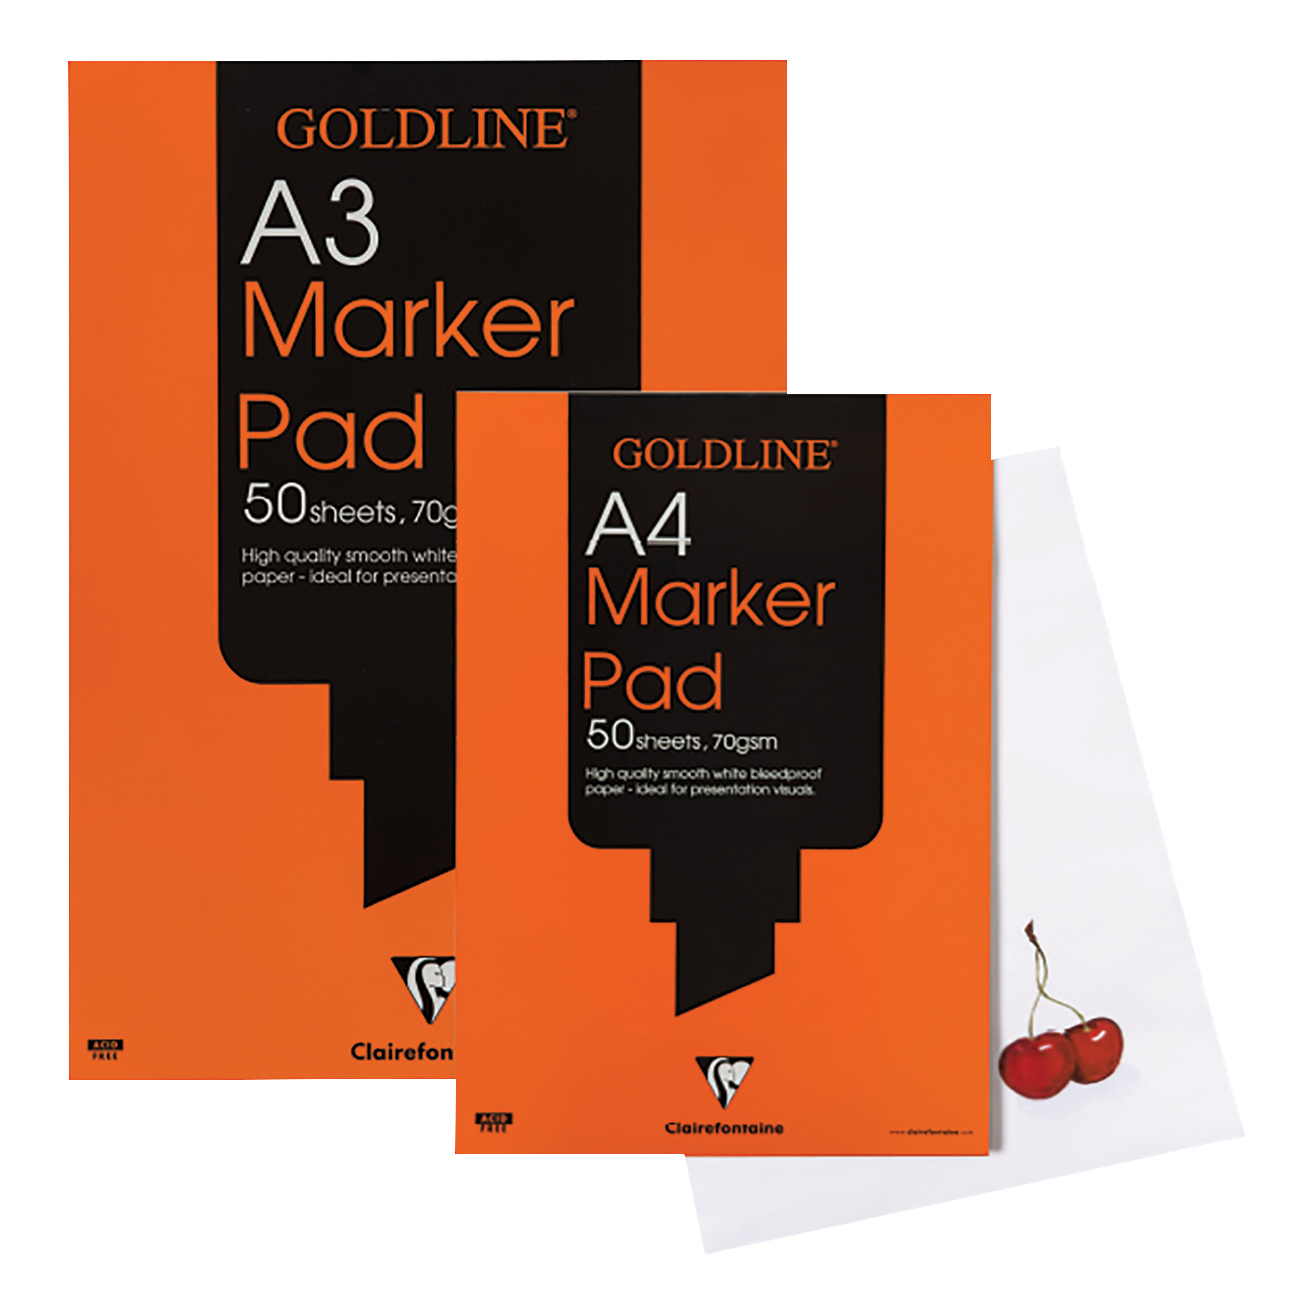 Goldline Bleedproof Marker Pad 70gsm Acid-free Paper 50 Sheets A4 White Ref GPB1A4Z Pack 5